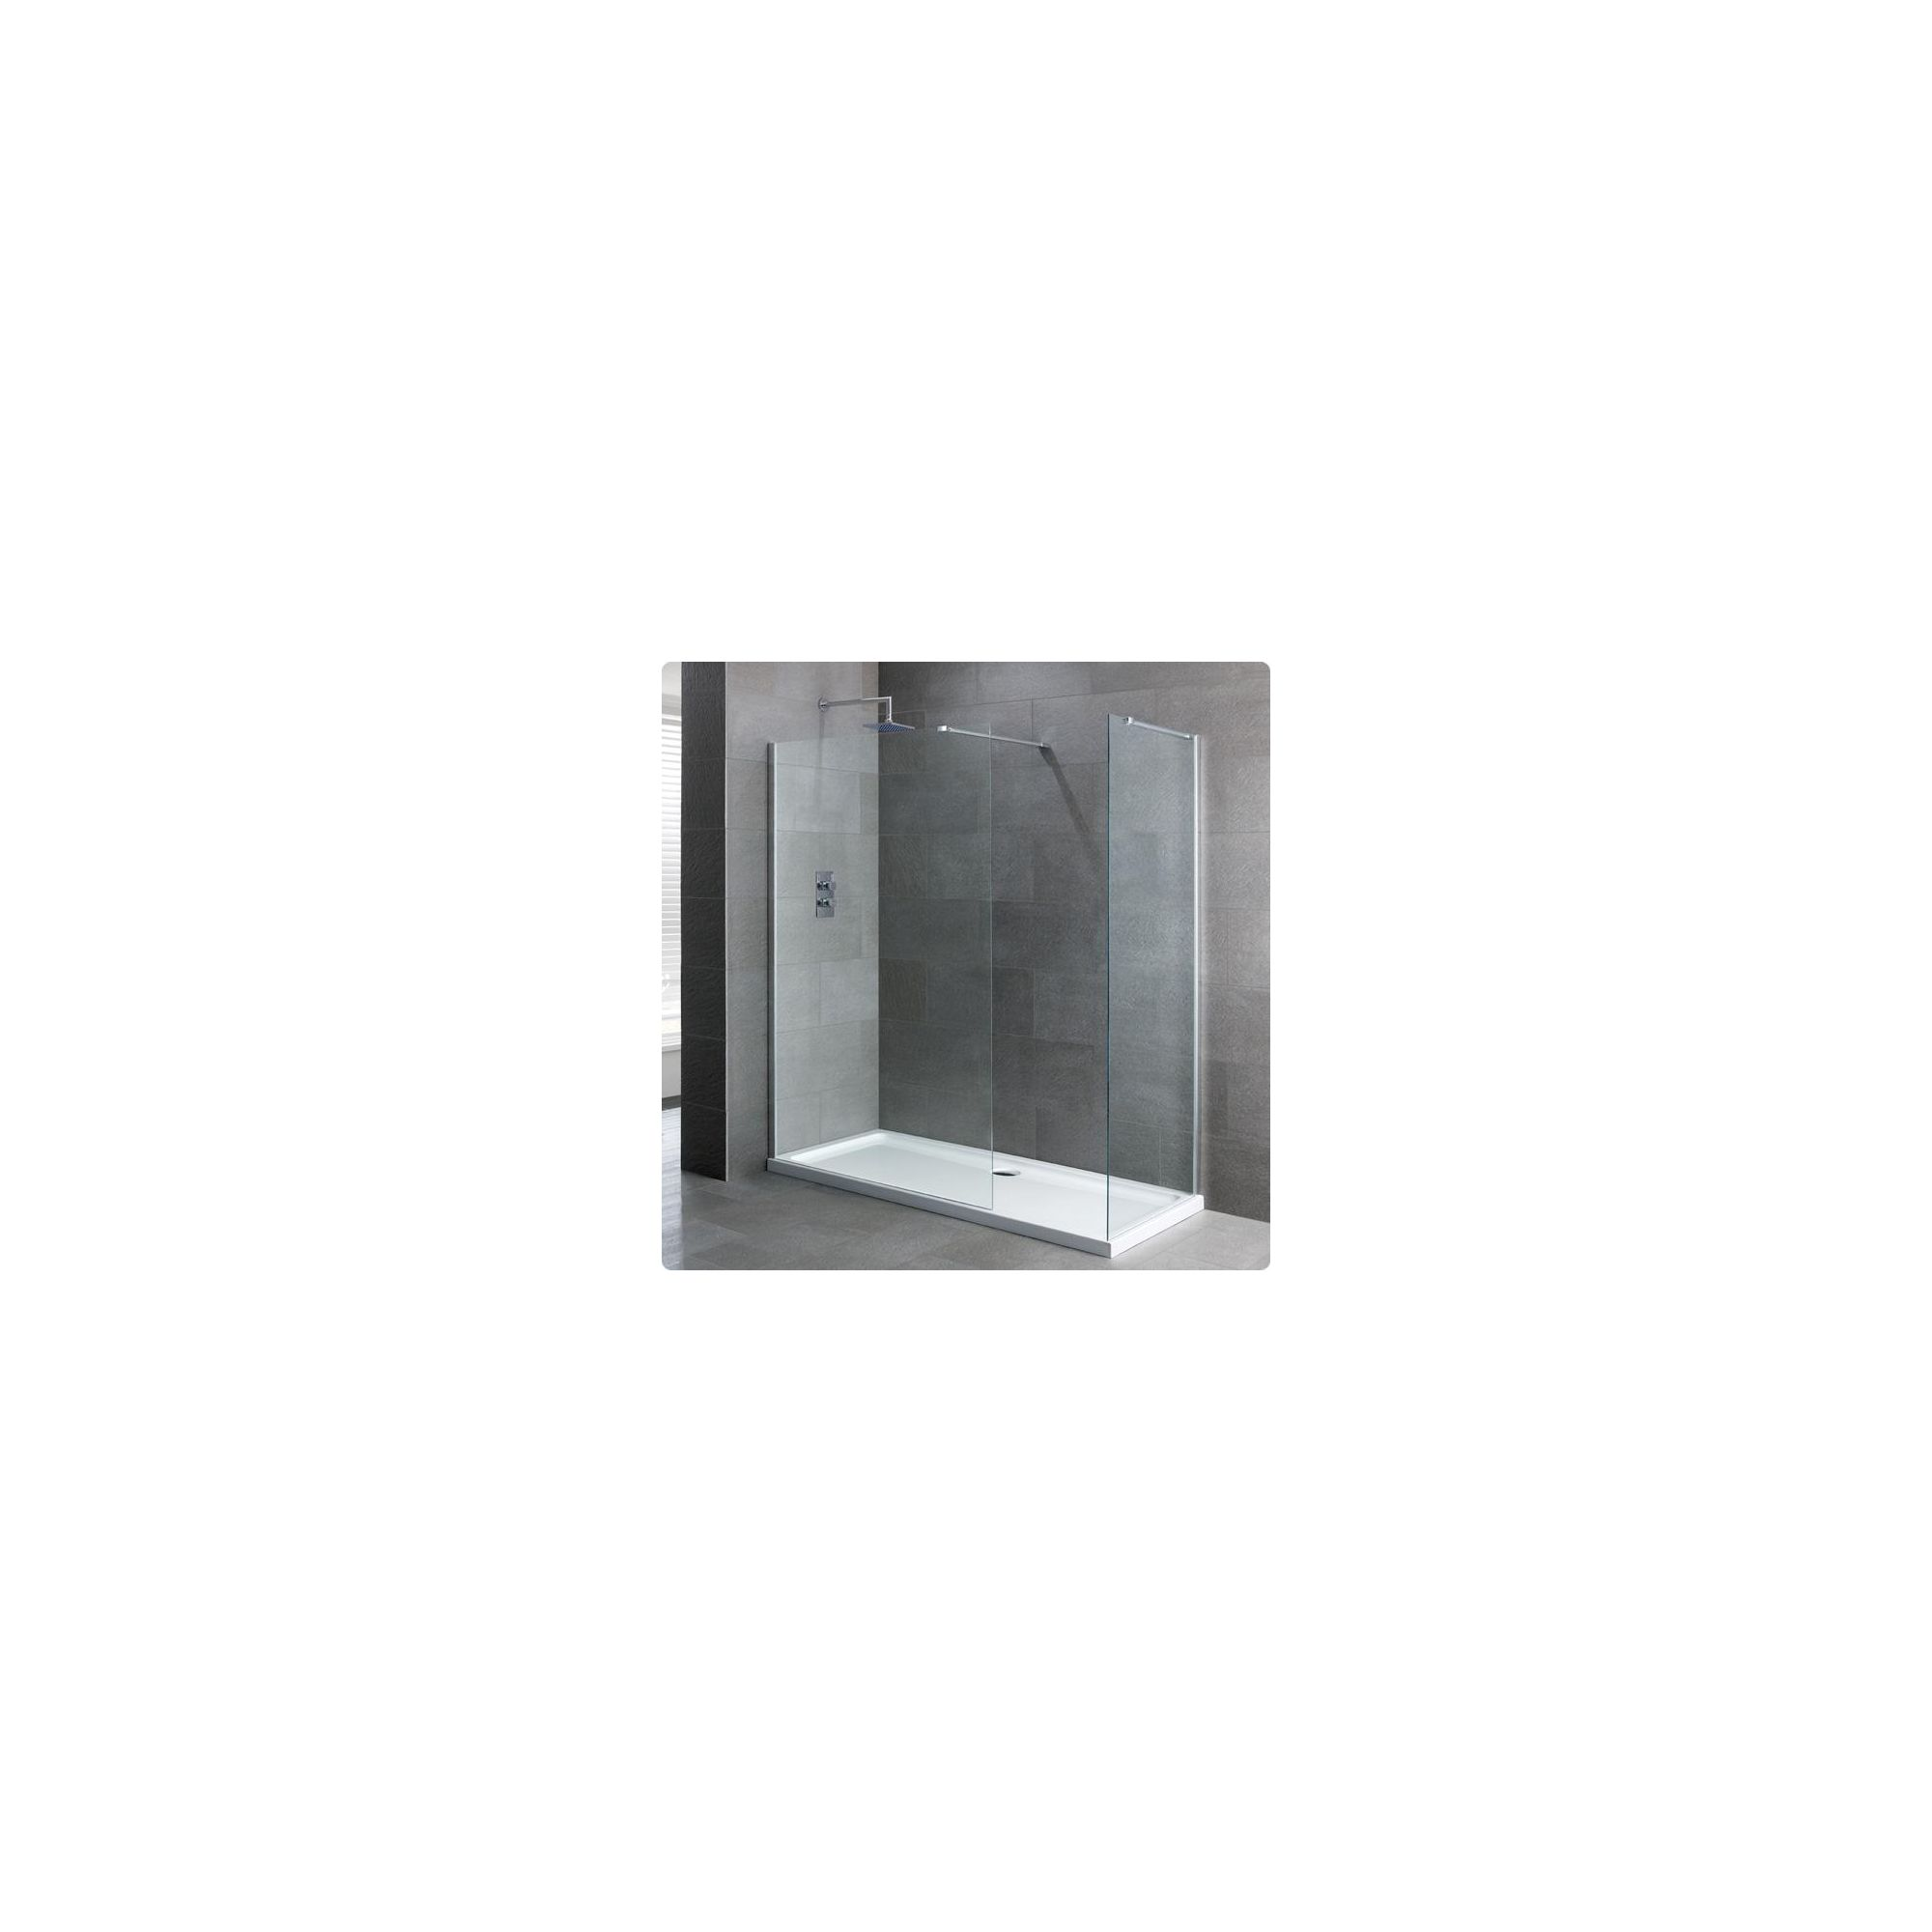 Duchy Select Silver Walk-In Shower Enclosure 1500mm x 700mm, Standard Tray, 6mm Glass at Tesco Direct